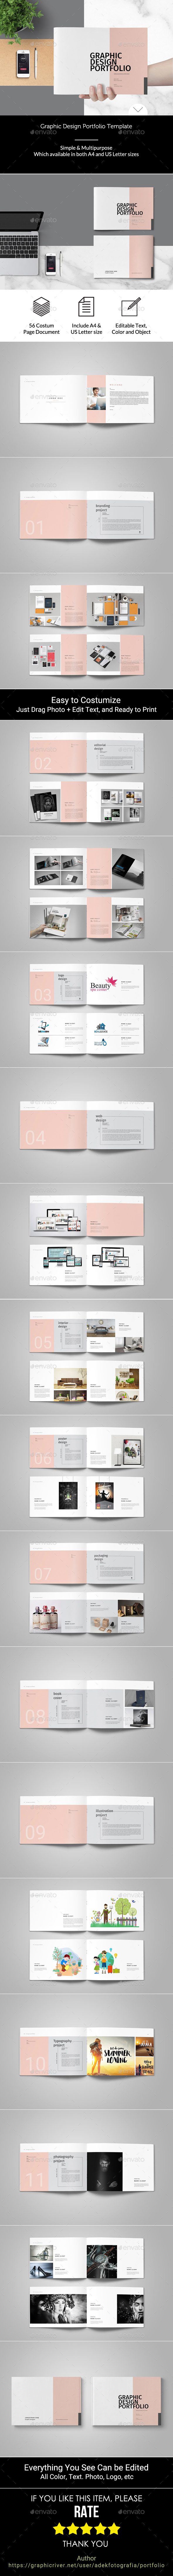 GraphicRiver Graphic Design Portfolio Template 21134760